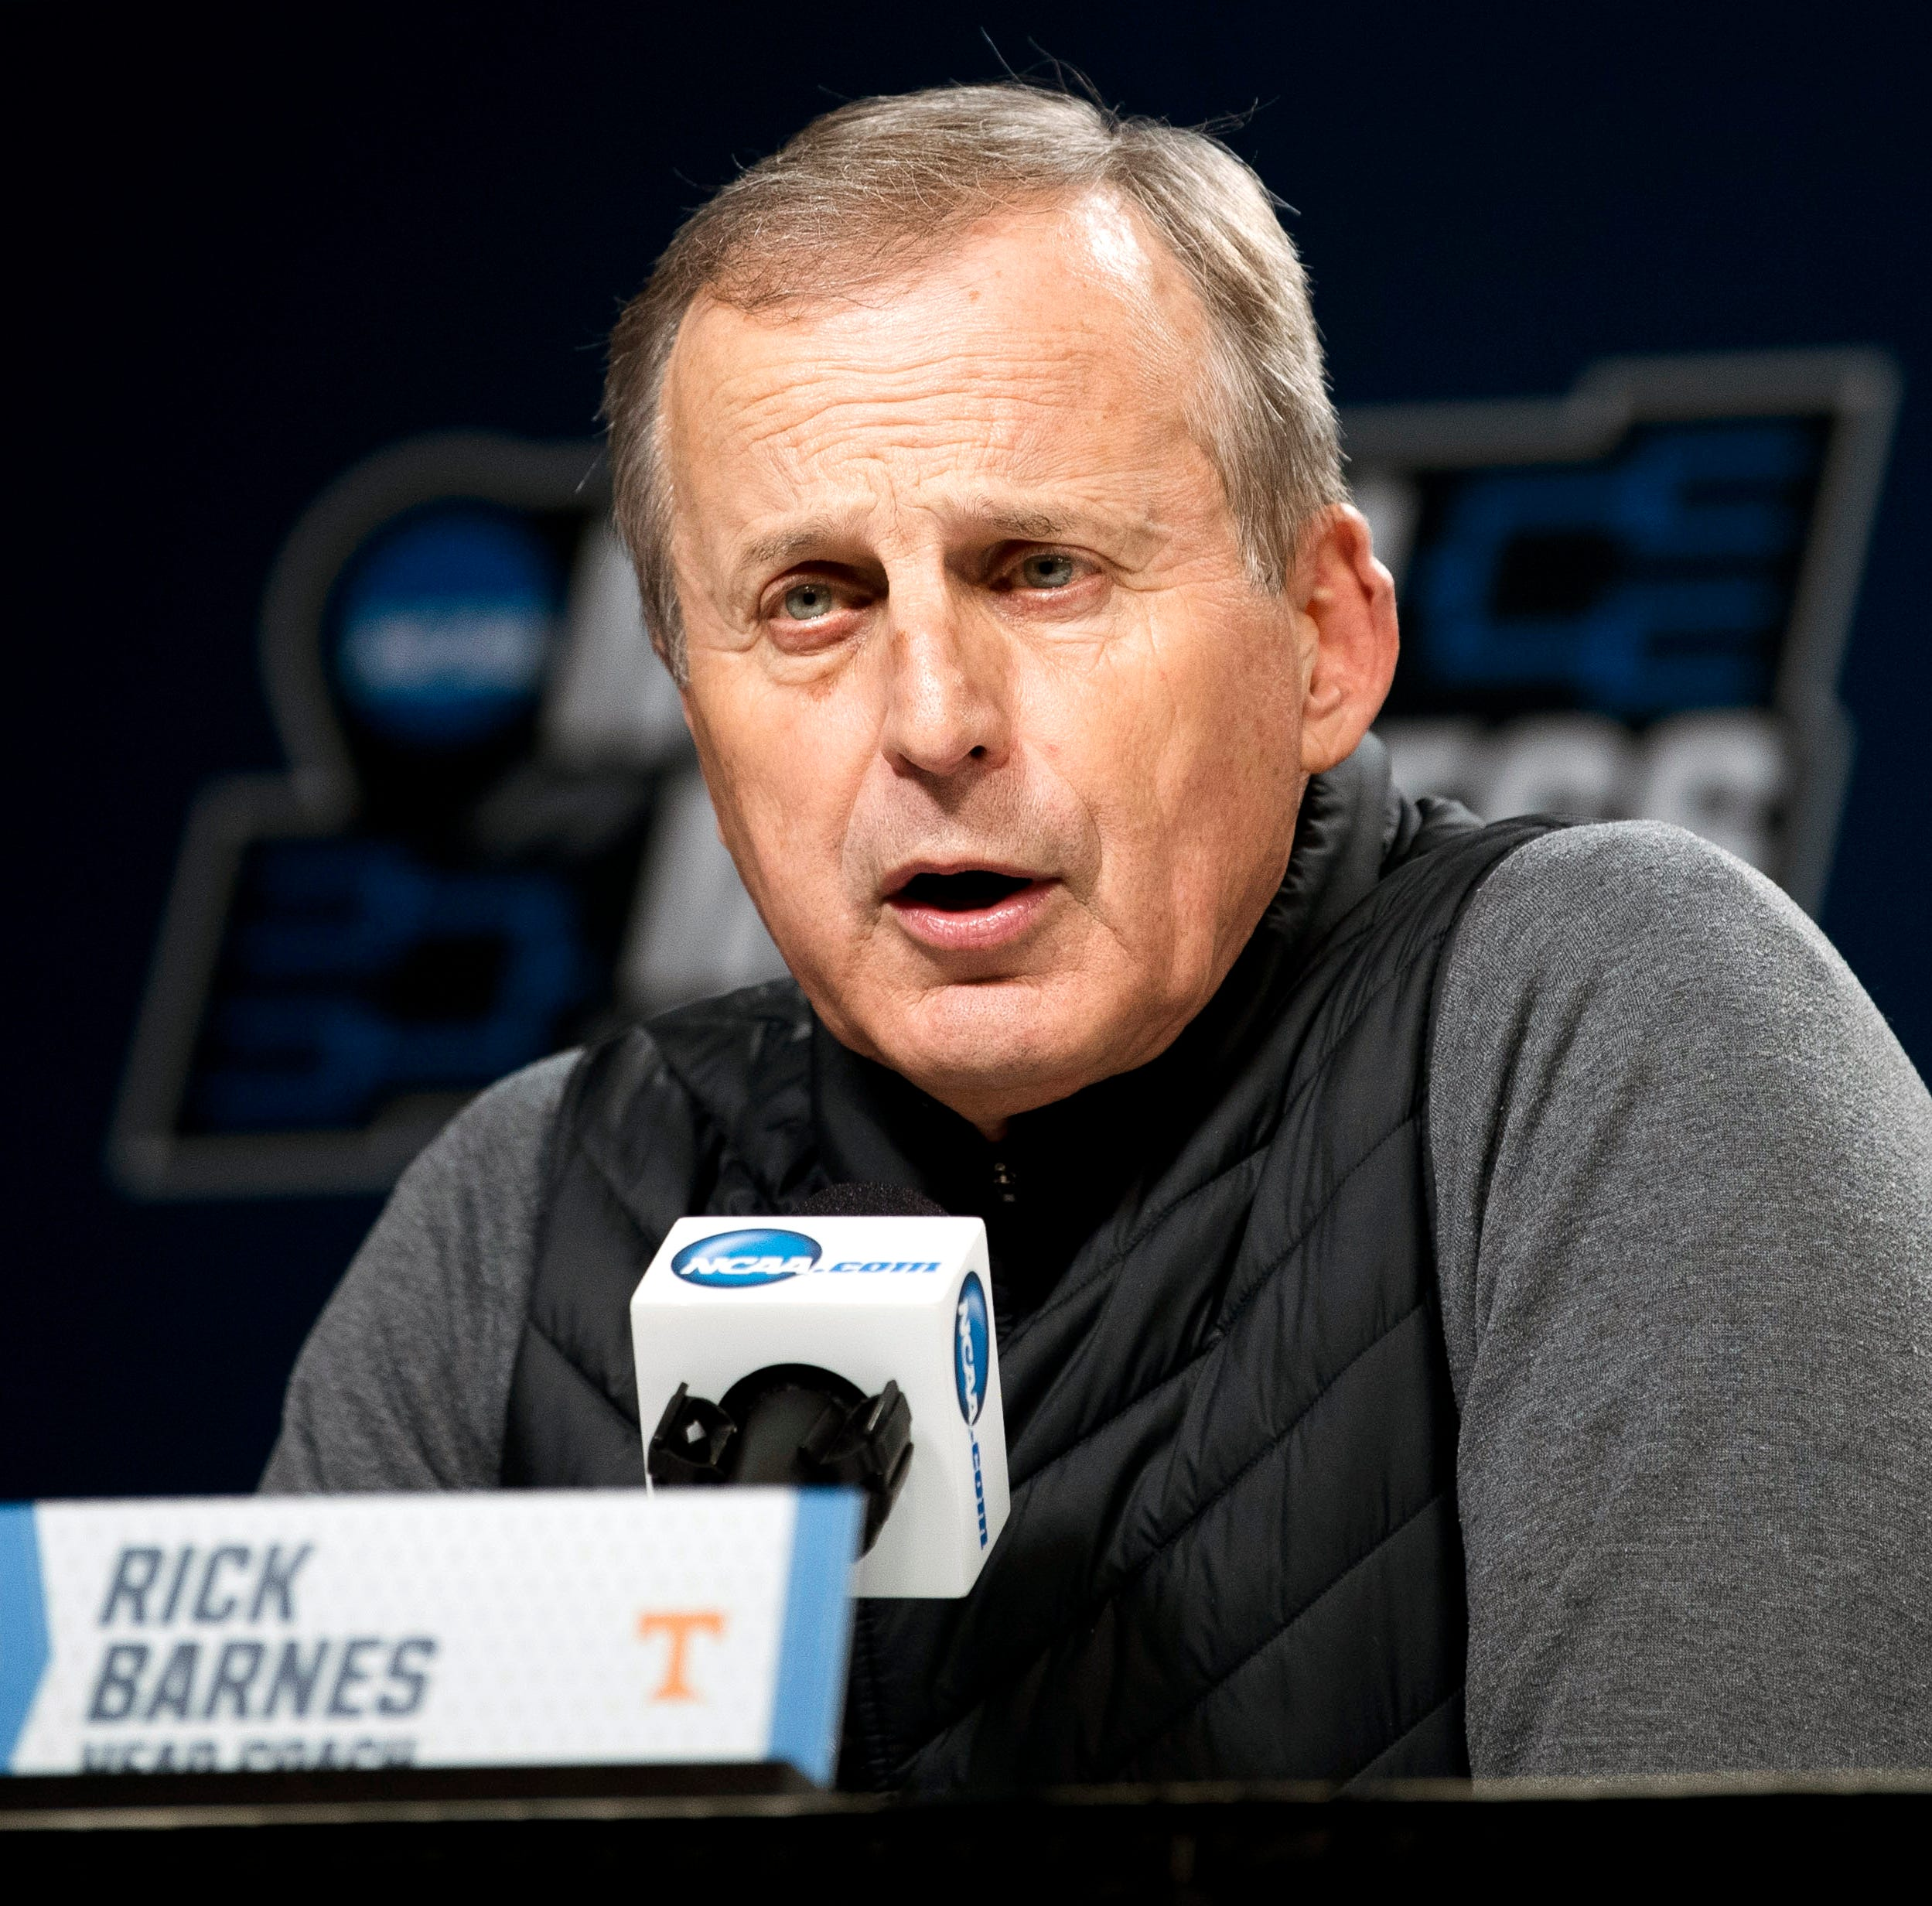 REPLAY: Phillip Fulmer and Rick Barnes rehash that UCLA negotiation process